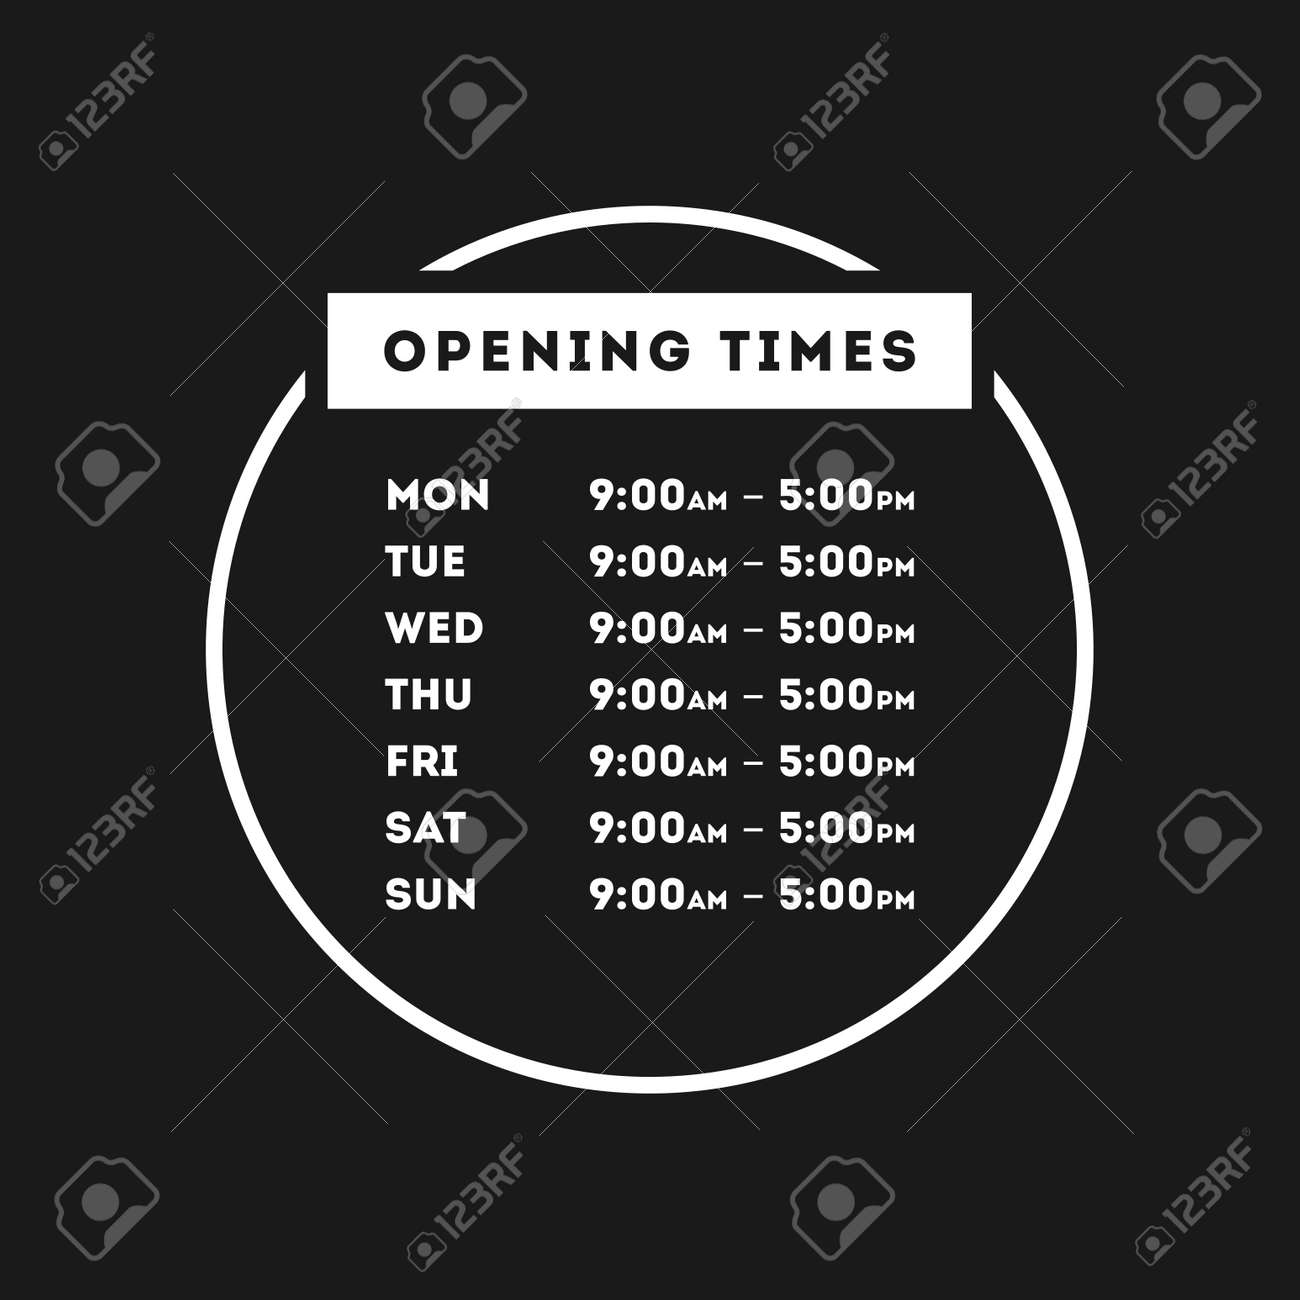 Transparent Vector Opening Time Hours Window Sticker Retail - 105673416